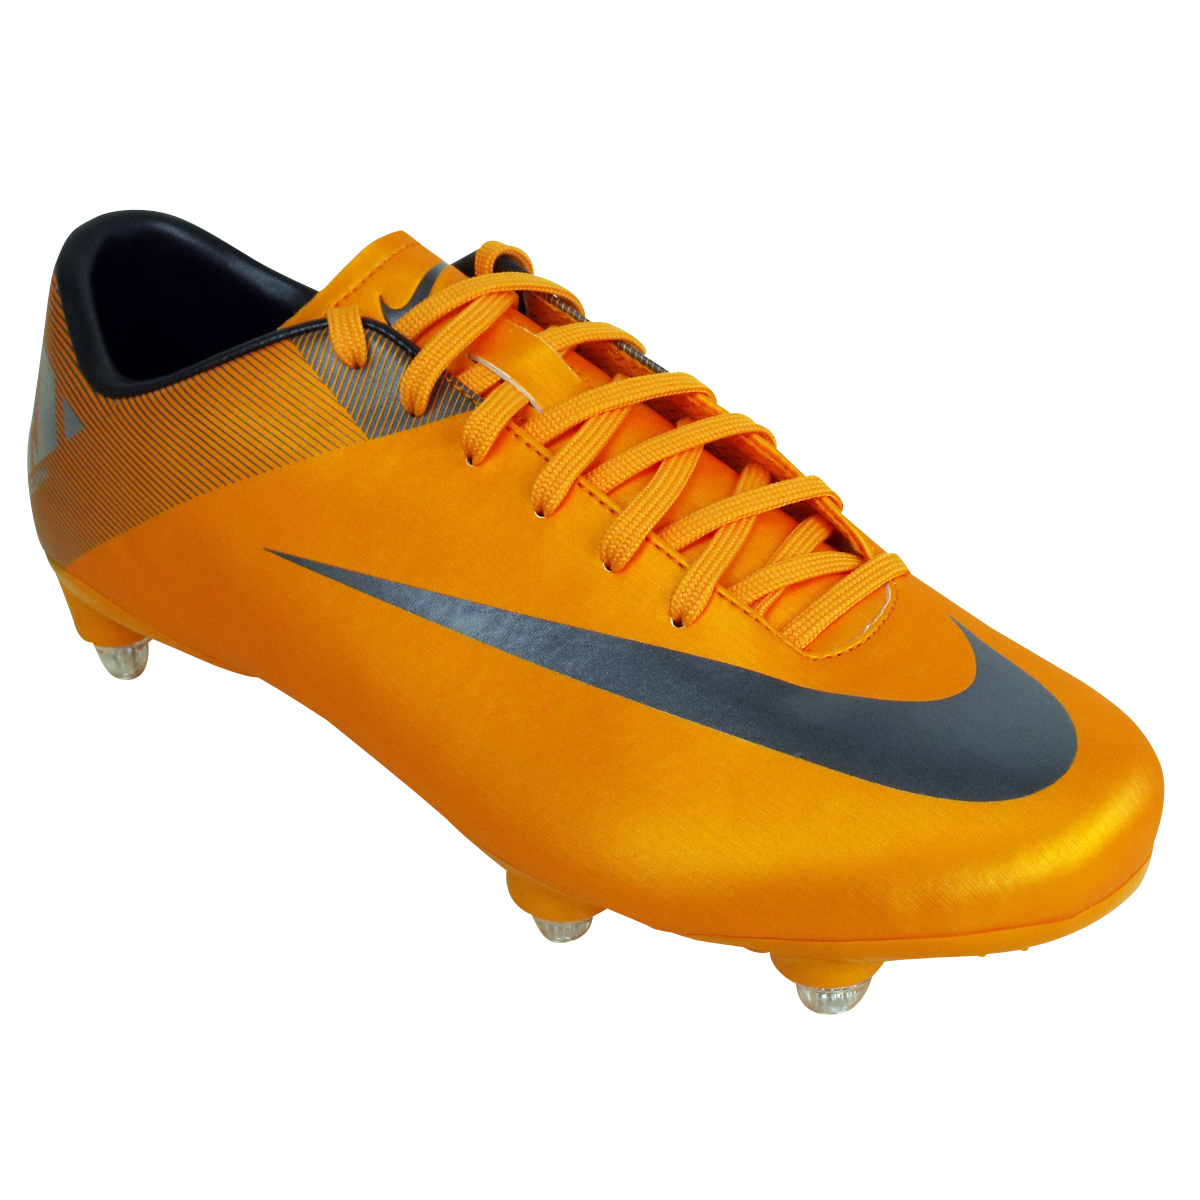 Mens-Nike-Mercurial-Victory-II-SG-Boot-Soft-Ground-Football-Boots-Soccer-Cleats